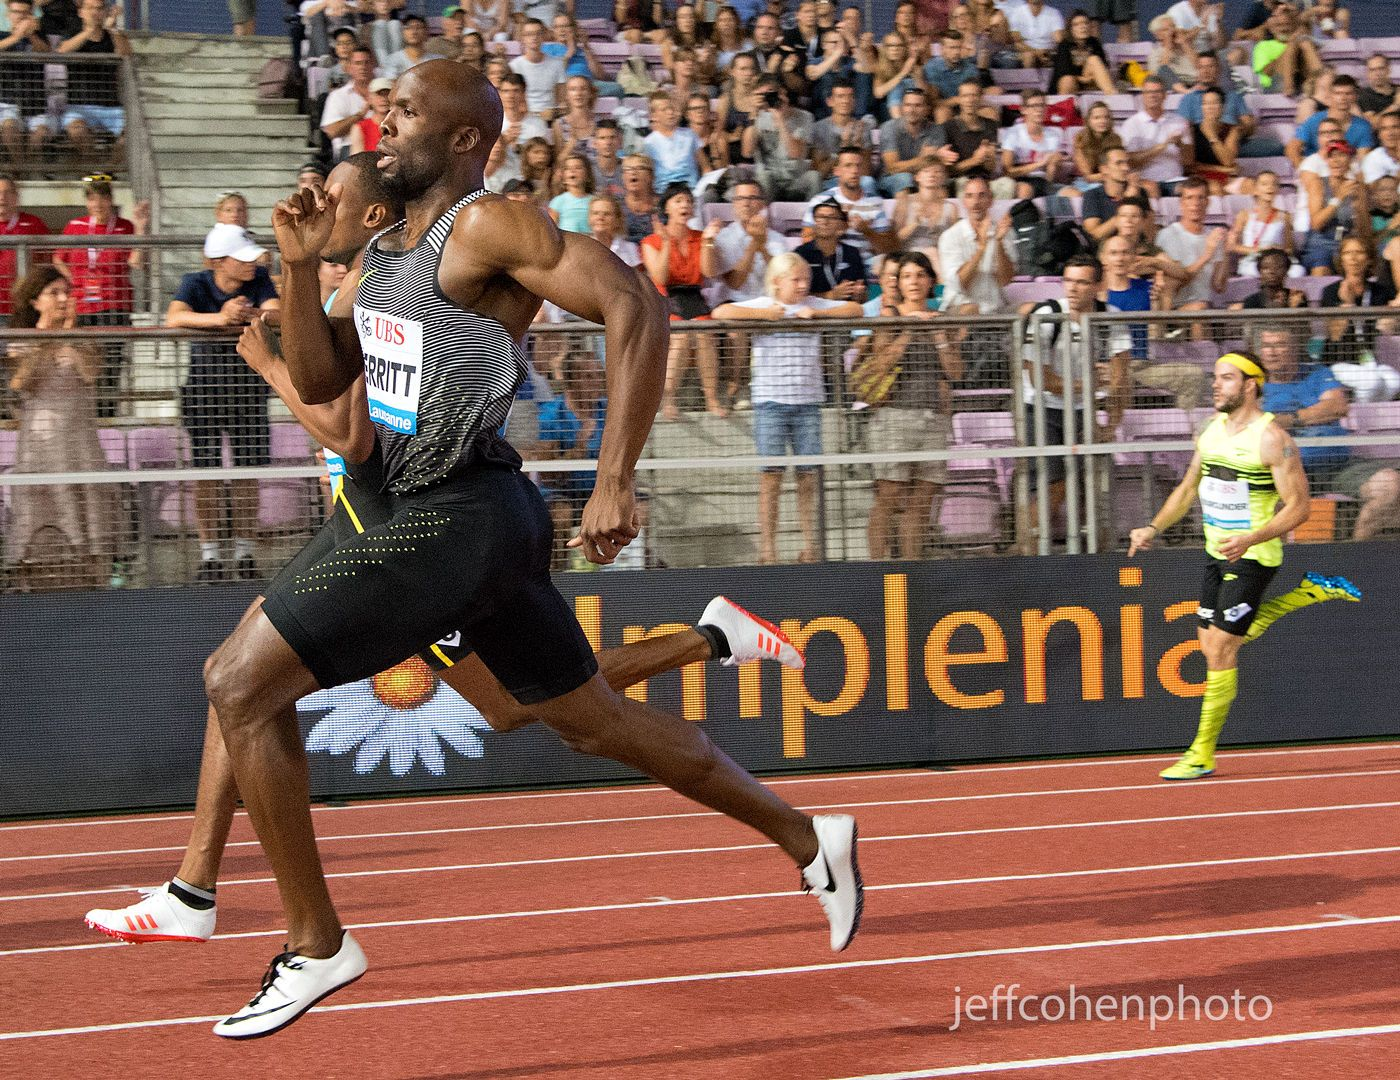 1r2016_athletissima_lausanne_l_merritt_200m_jeff_cohen_photo_180_web.jpg